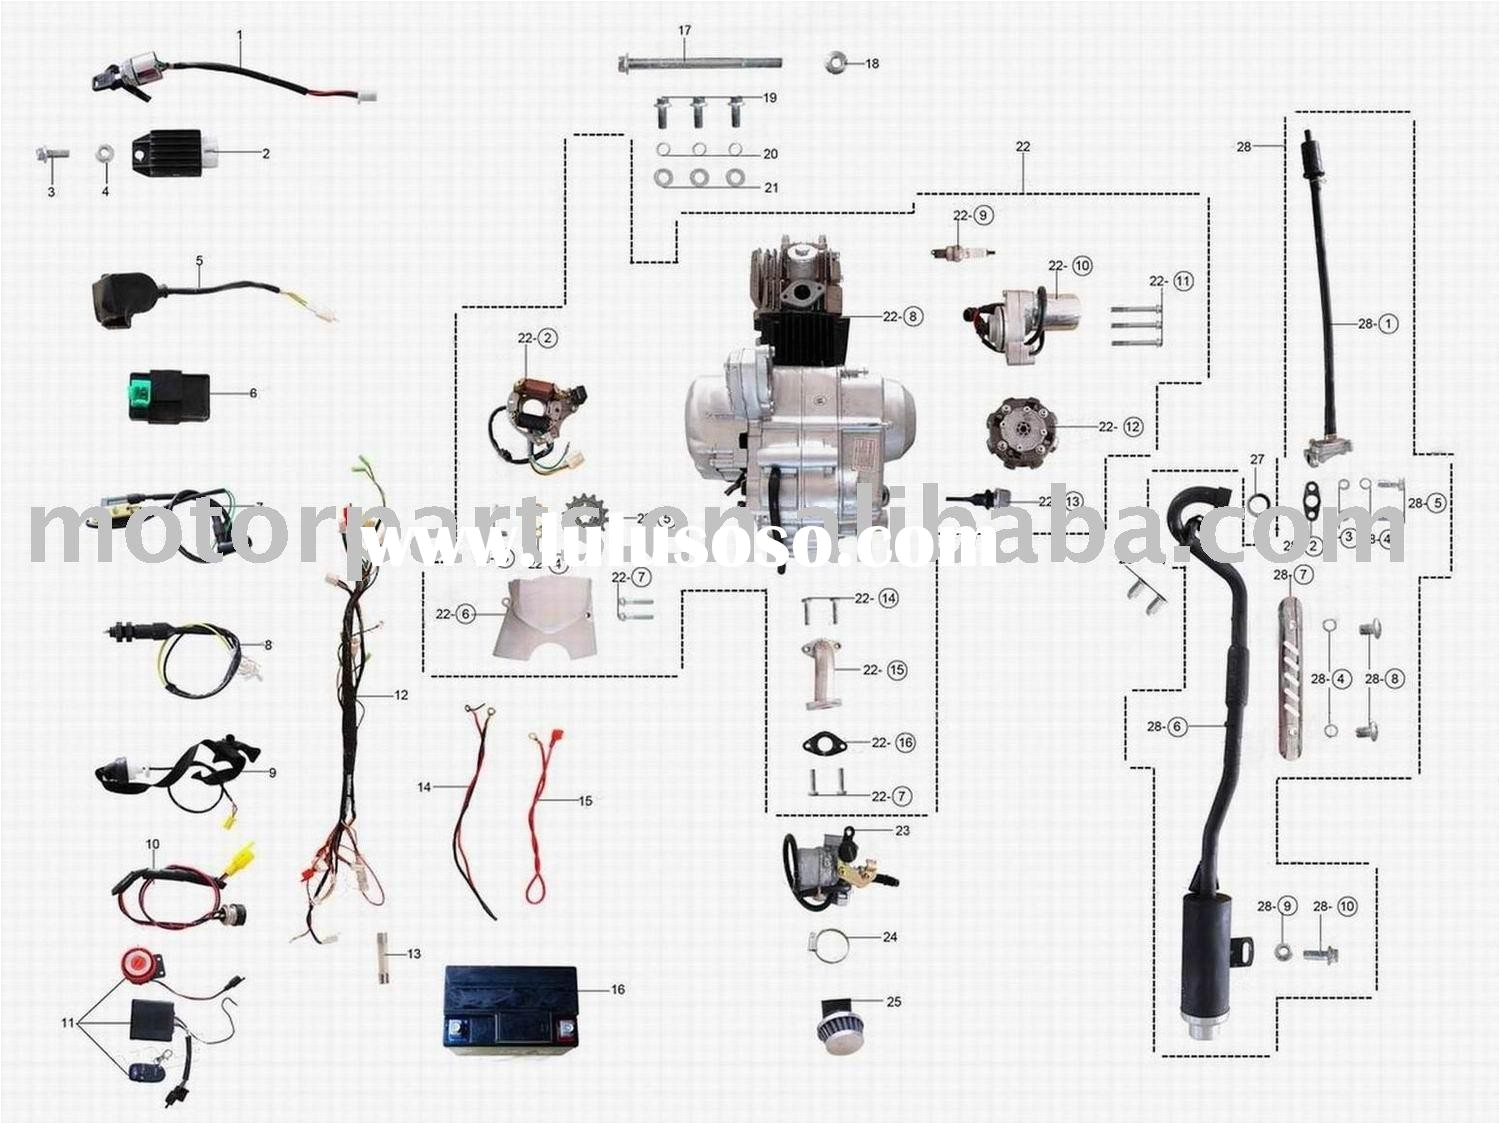 quad wiring diagram cc chinese bike images and 110cc atv for to 110cc within 110cc atv wiring diagram jpg